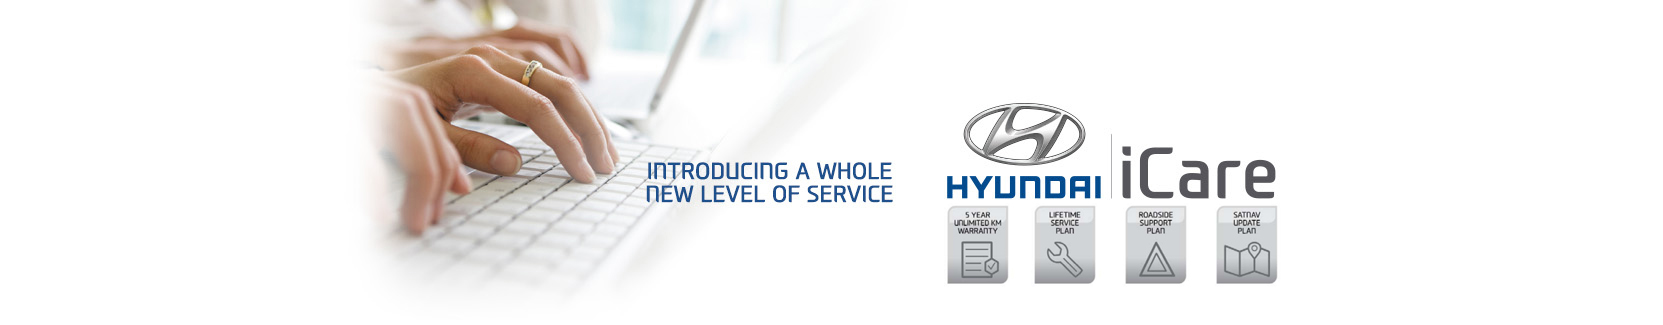 Get Hyundai iCare, a whole new level of support, at Brendale Hyundai in Brisbane.